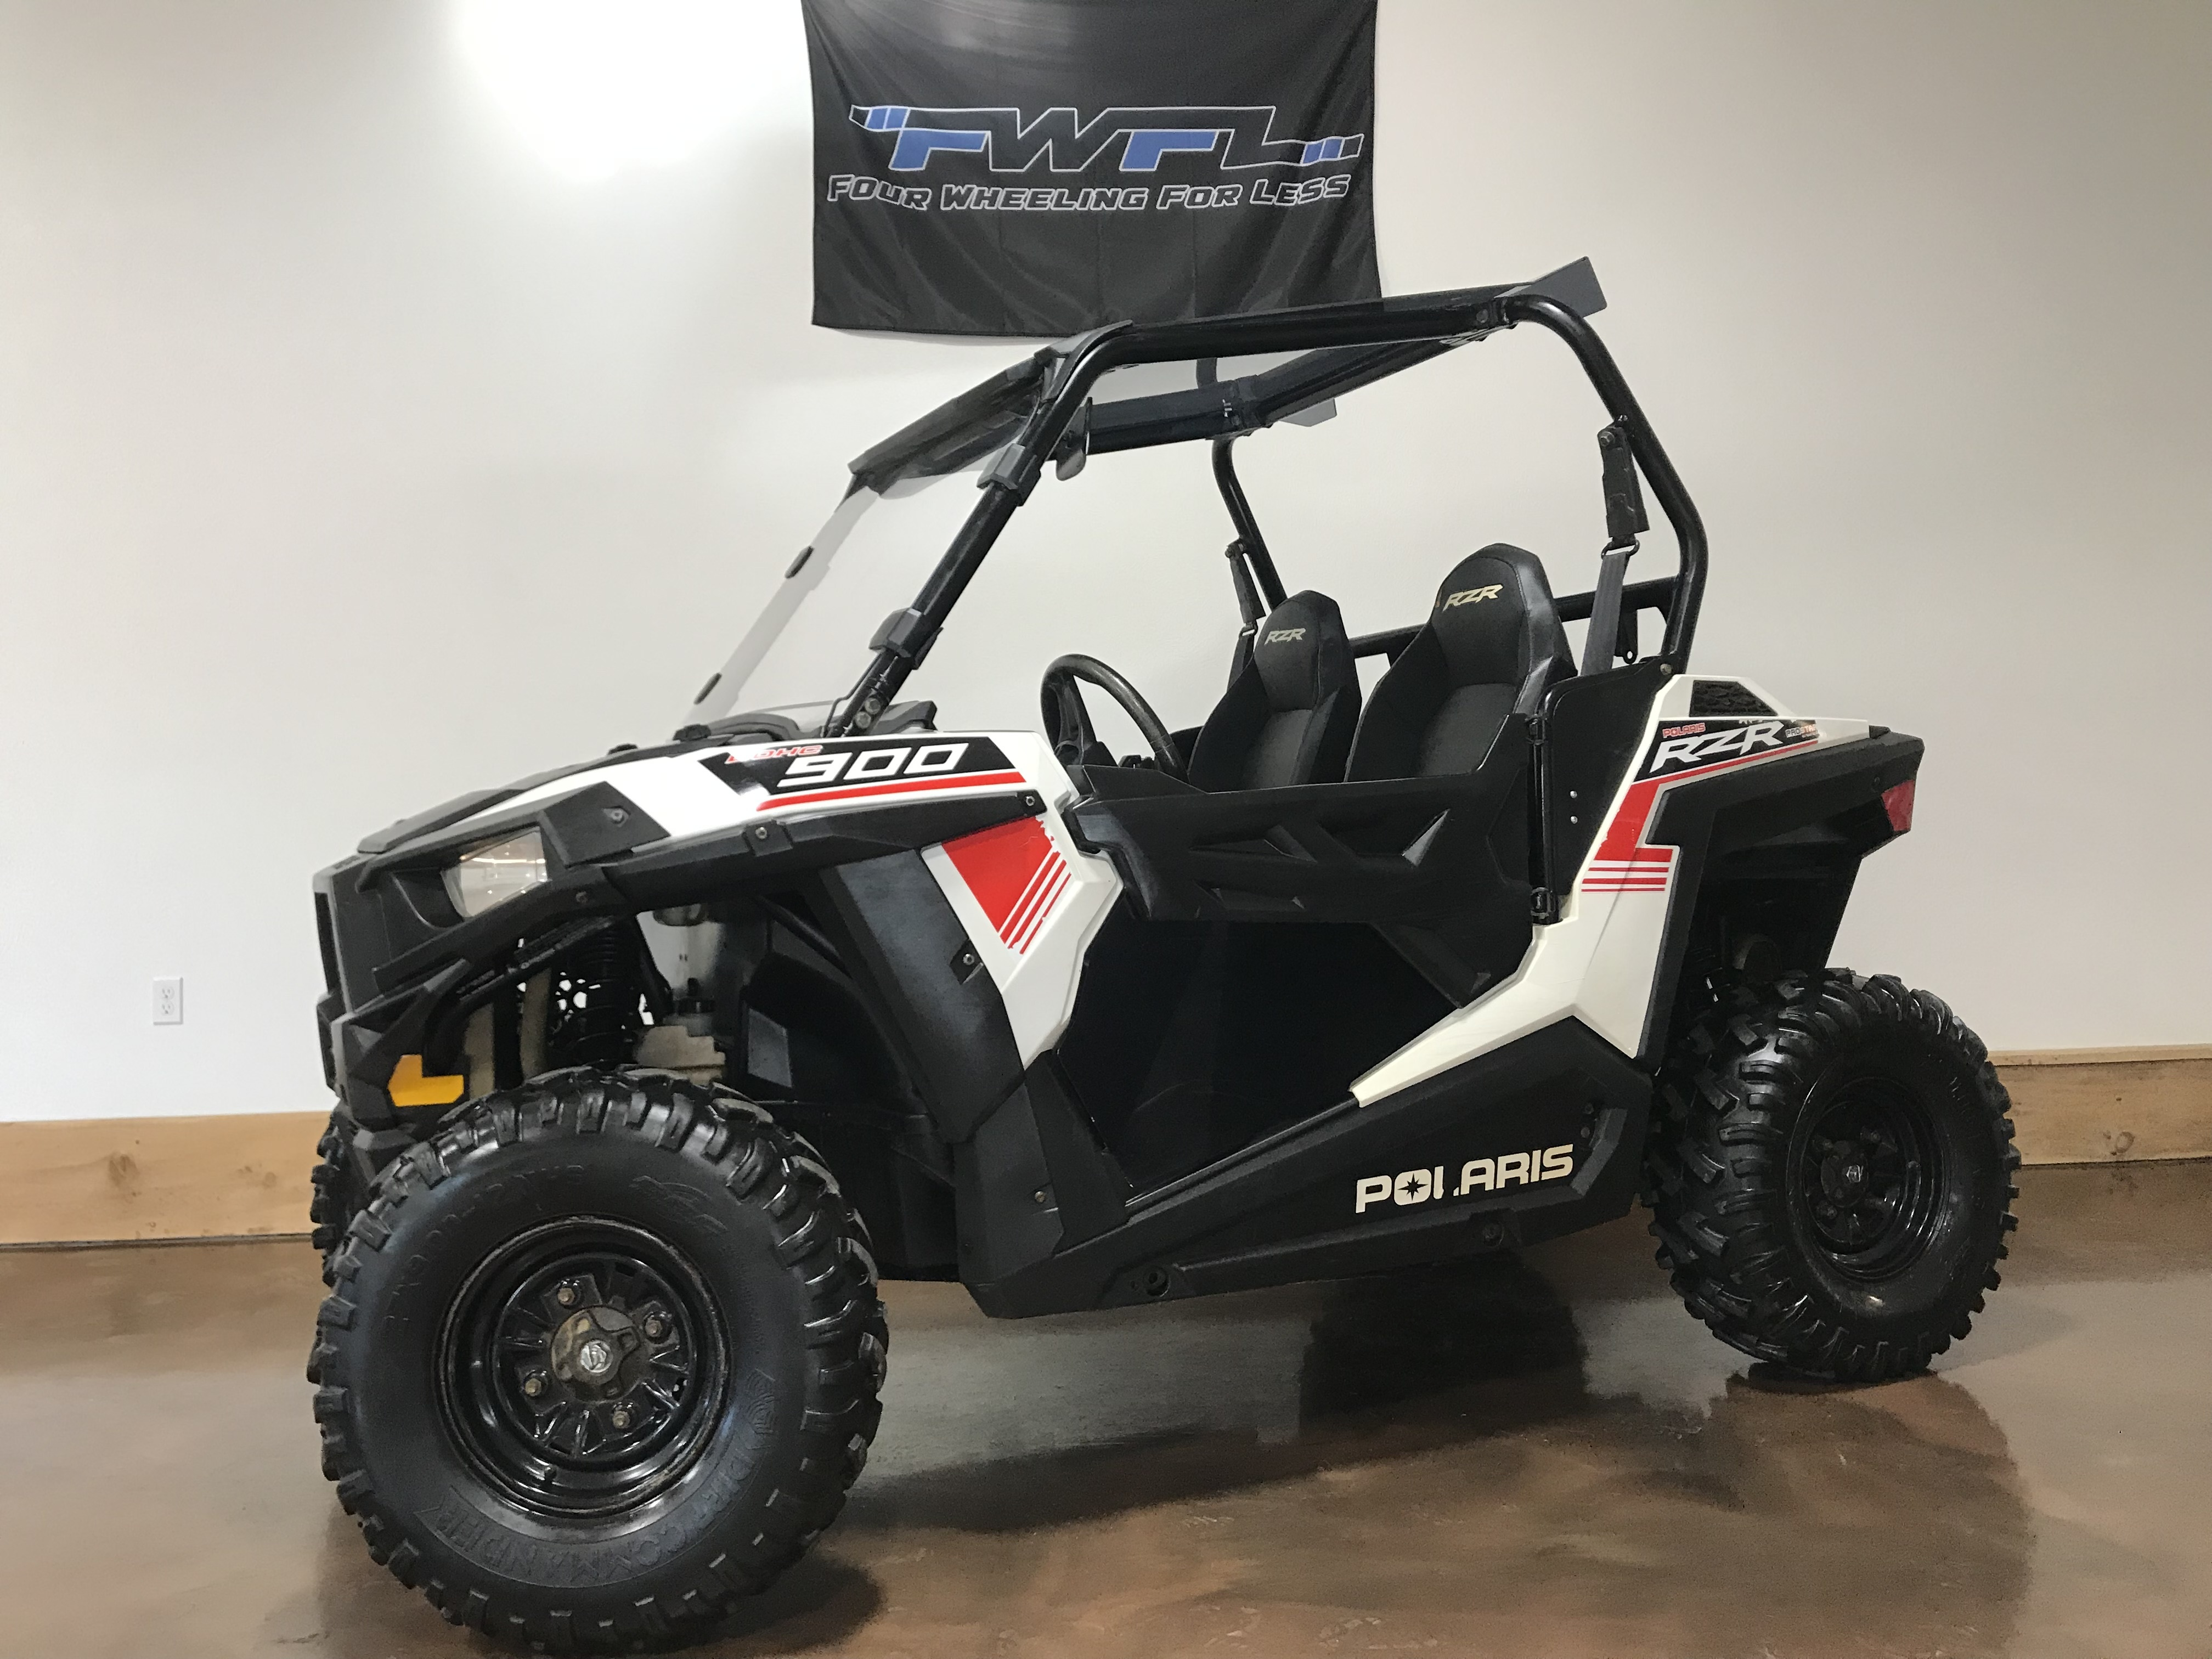 Four Wheeling For Less | Specializing in buying and selling